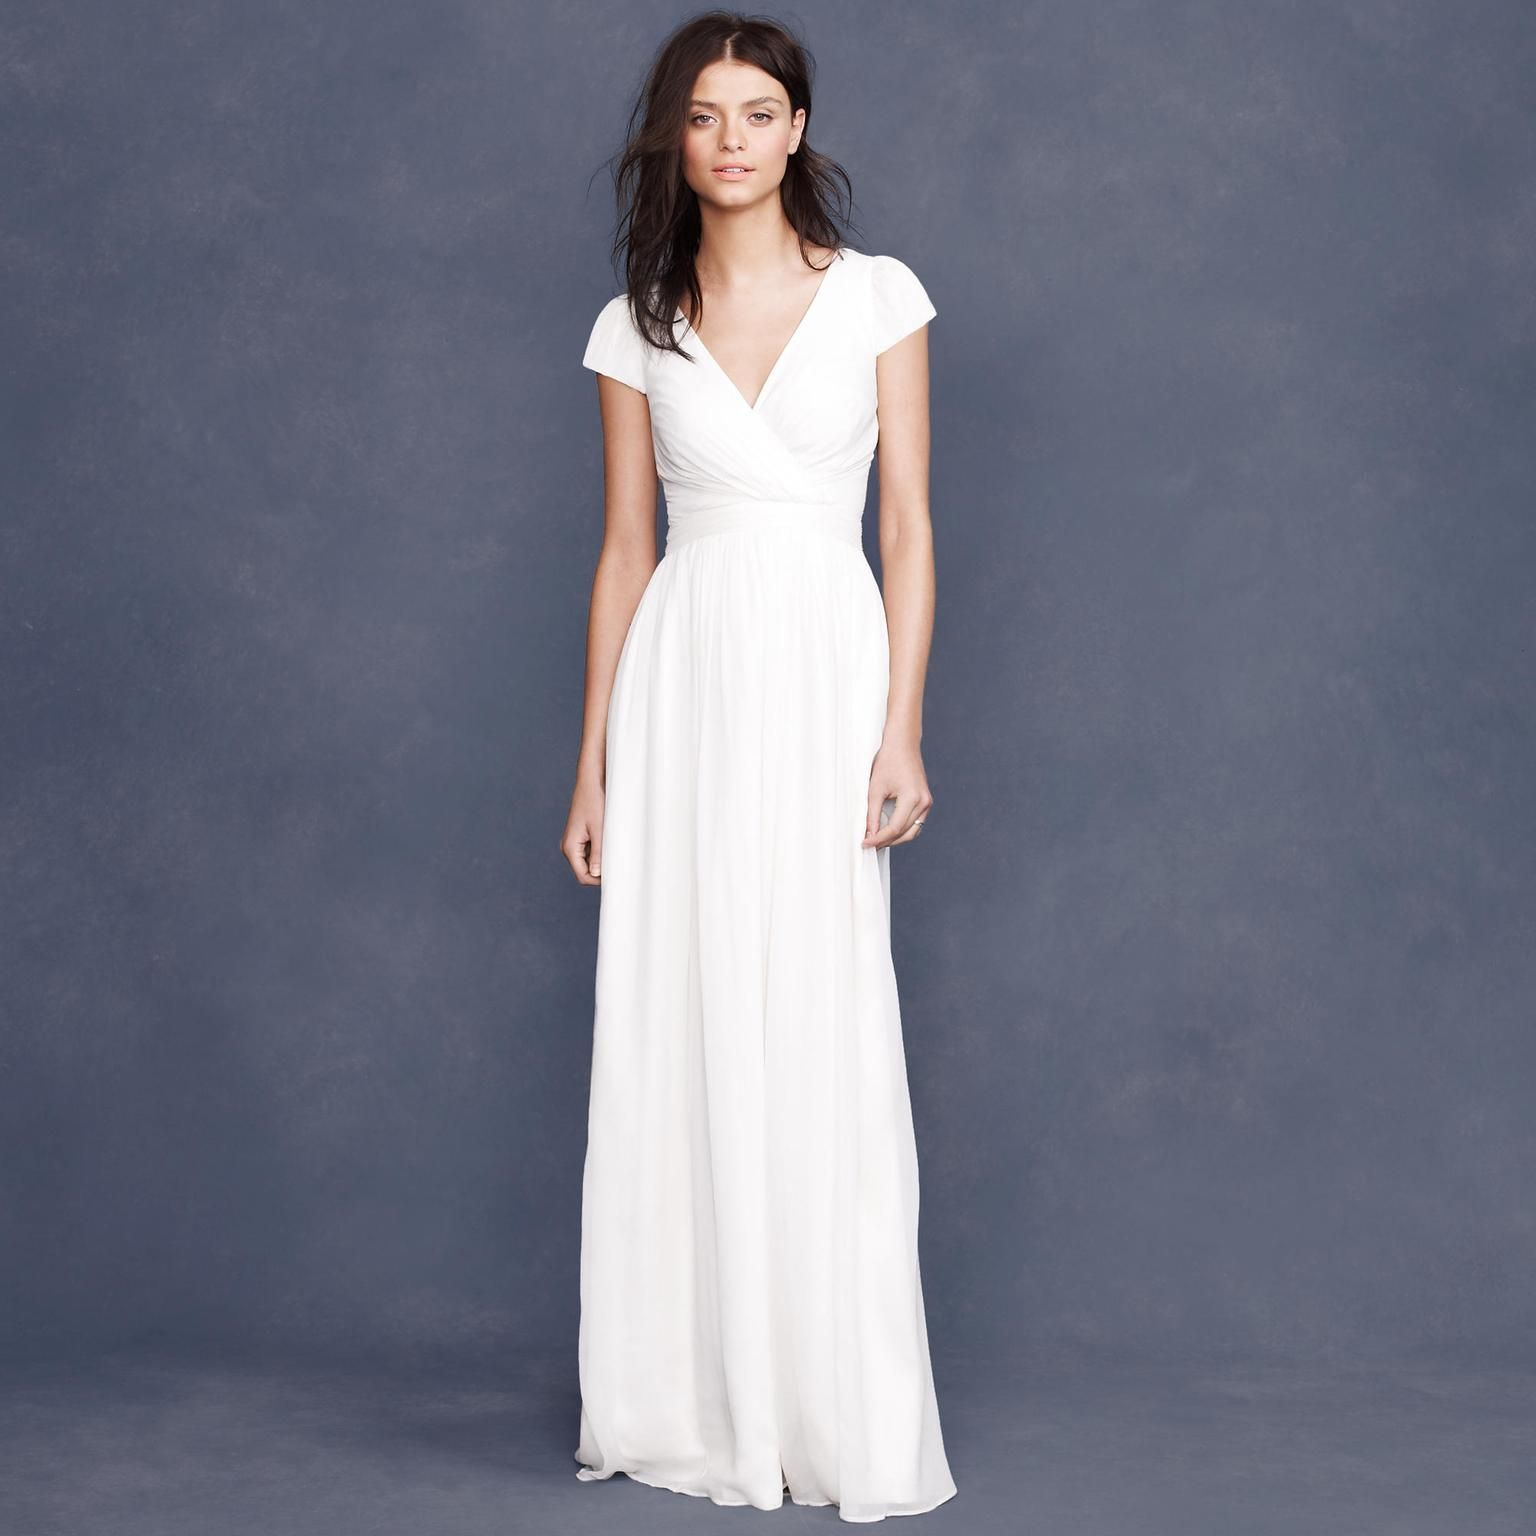 J crew mirabelle size new unaltered wedding dresses